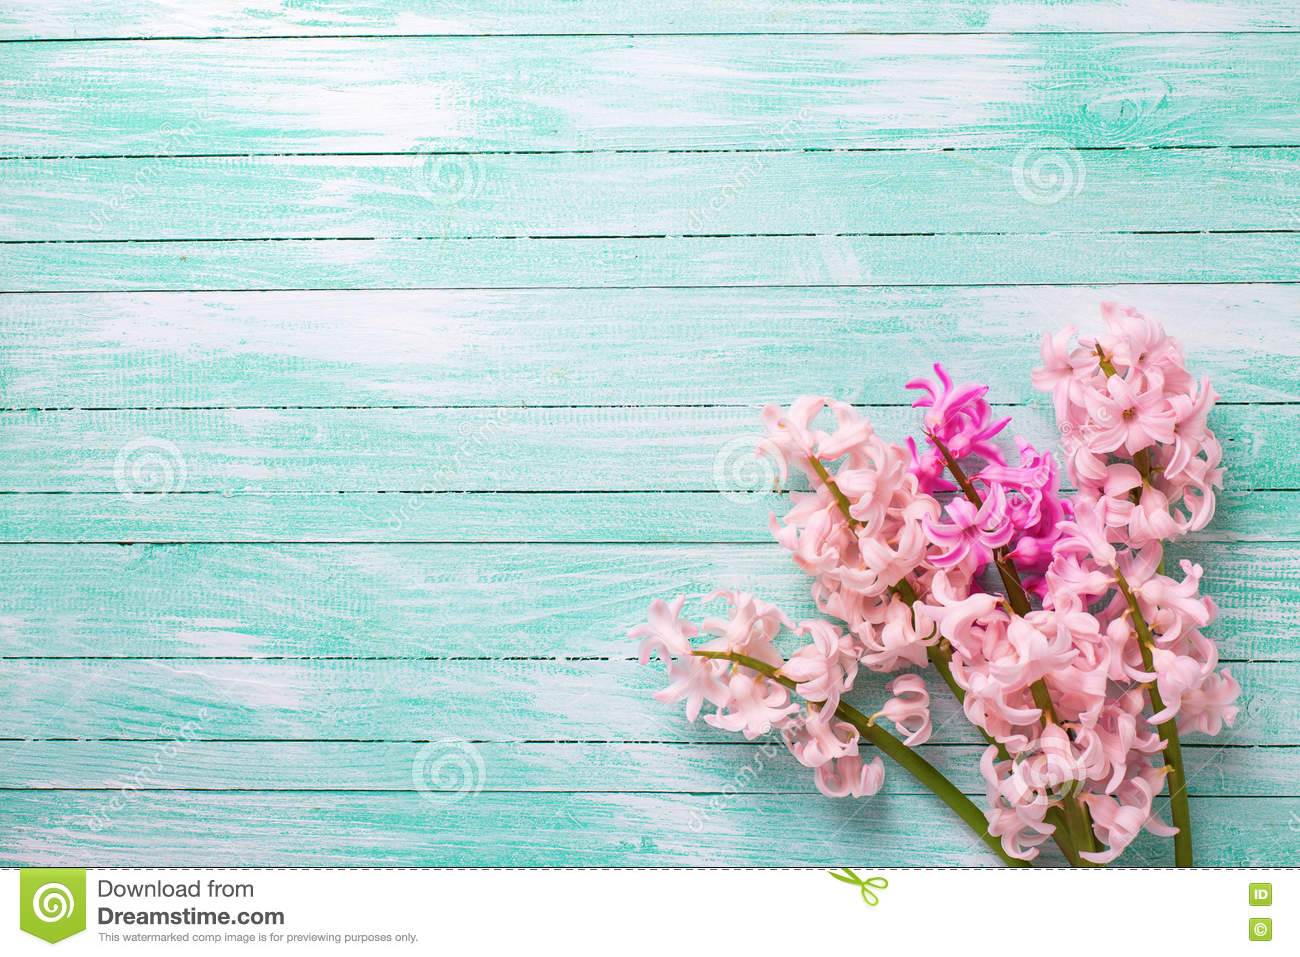 Background with fresh pink flower hyacinths on turquoise paint